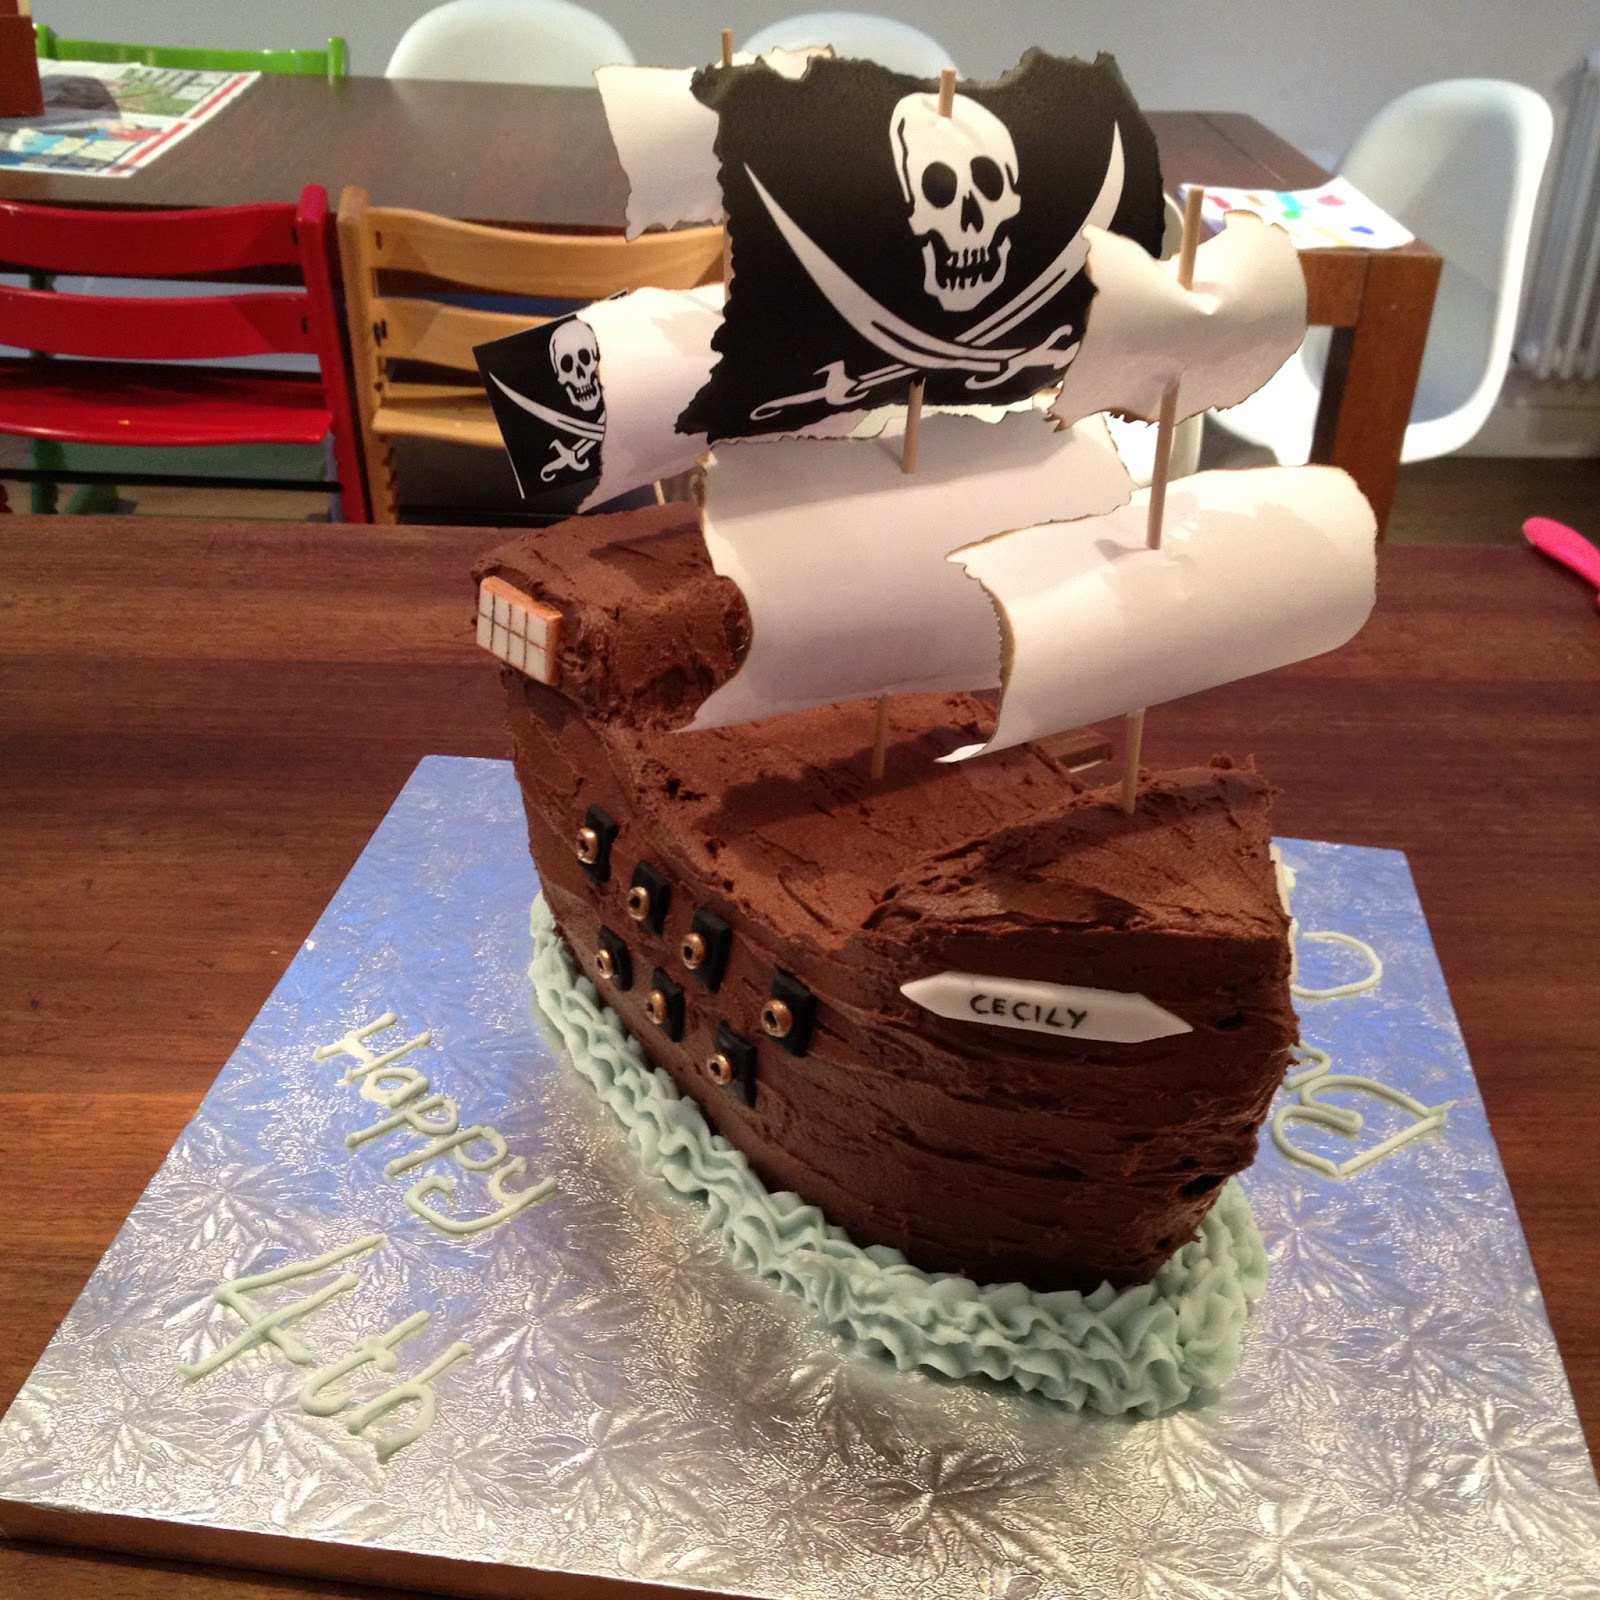 Best ideas about Ship Birthday Cake . Save or Pin Truly Scrumptious Pirate Ship Cake Now.